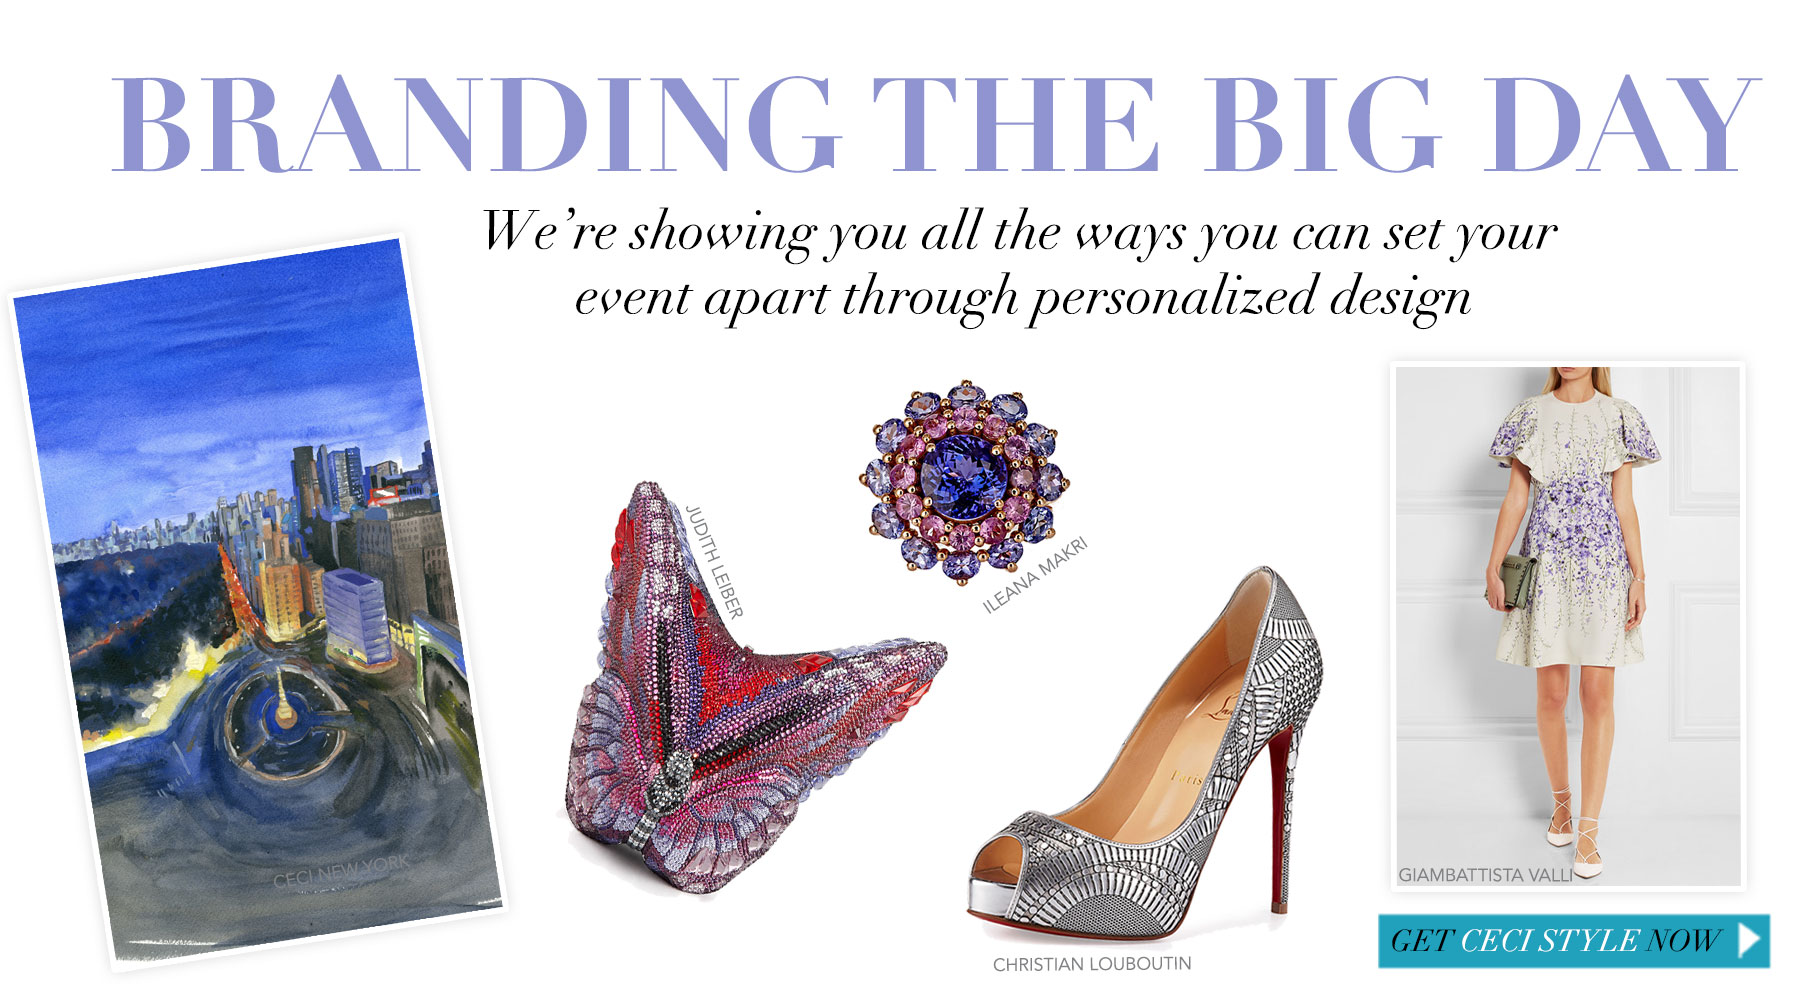 Branding The Big Day - We're showing you all the ways you can set your event apart through personalized design